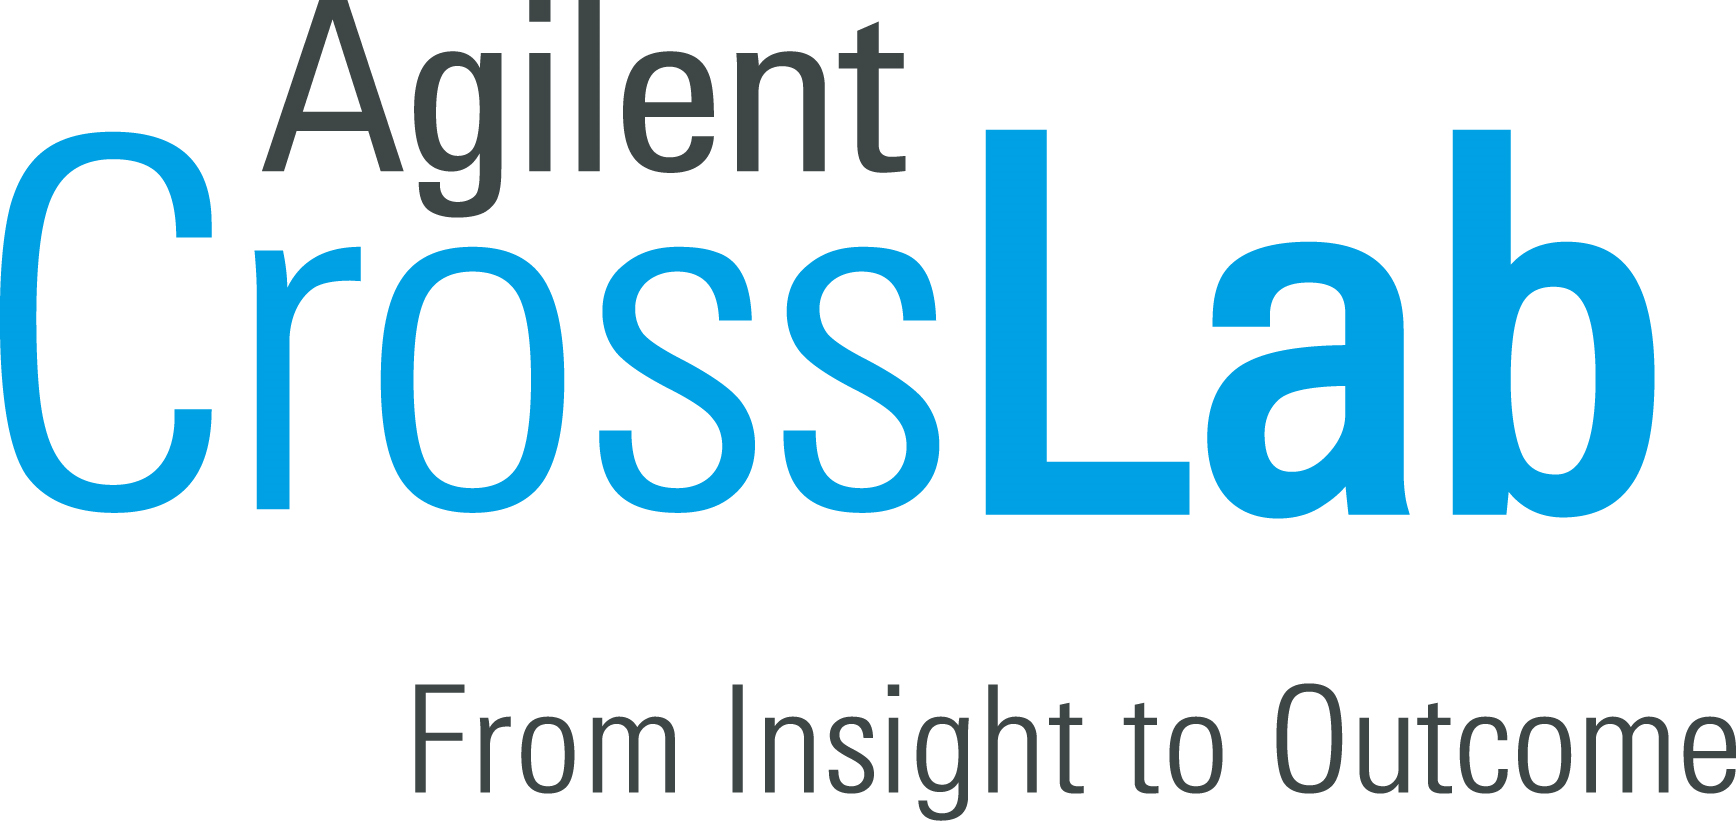 Agilent cross lab wordmark